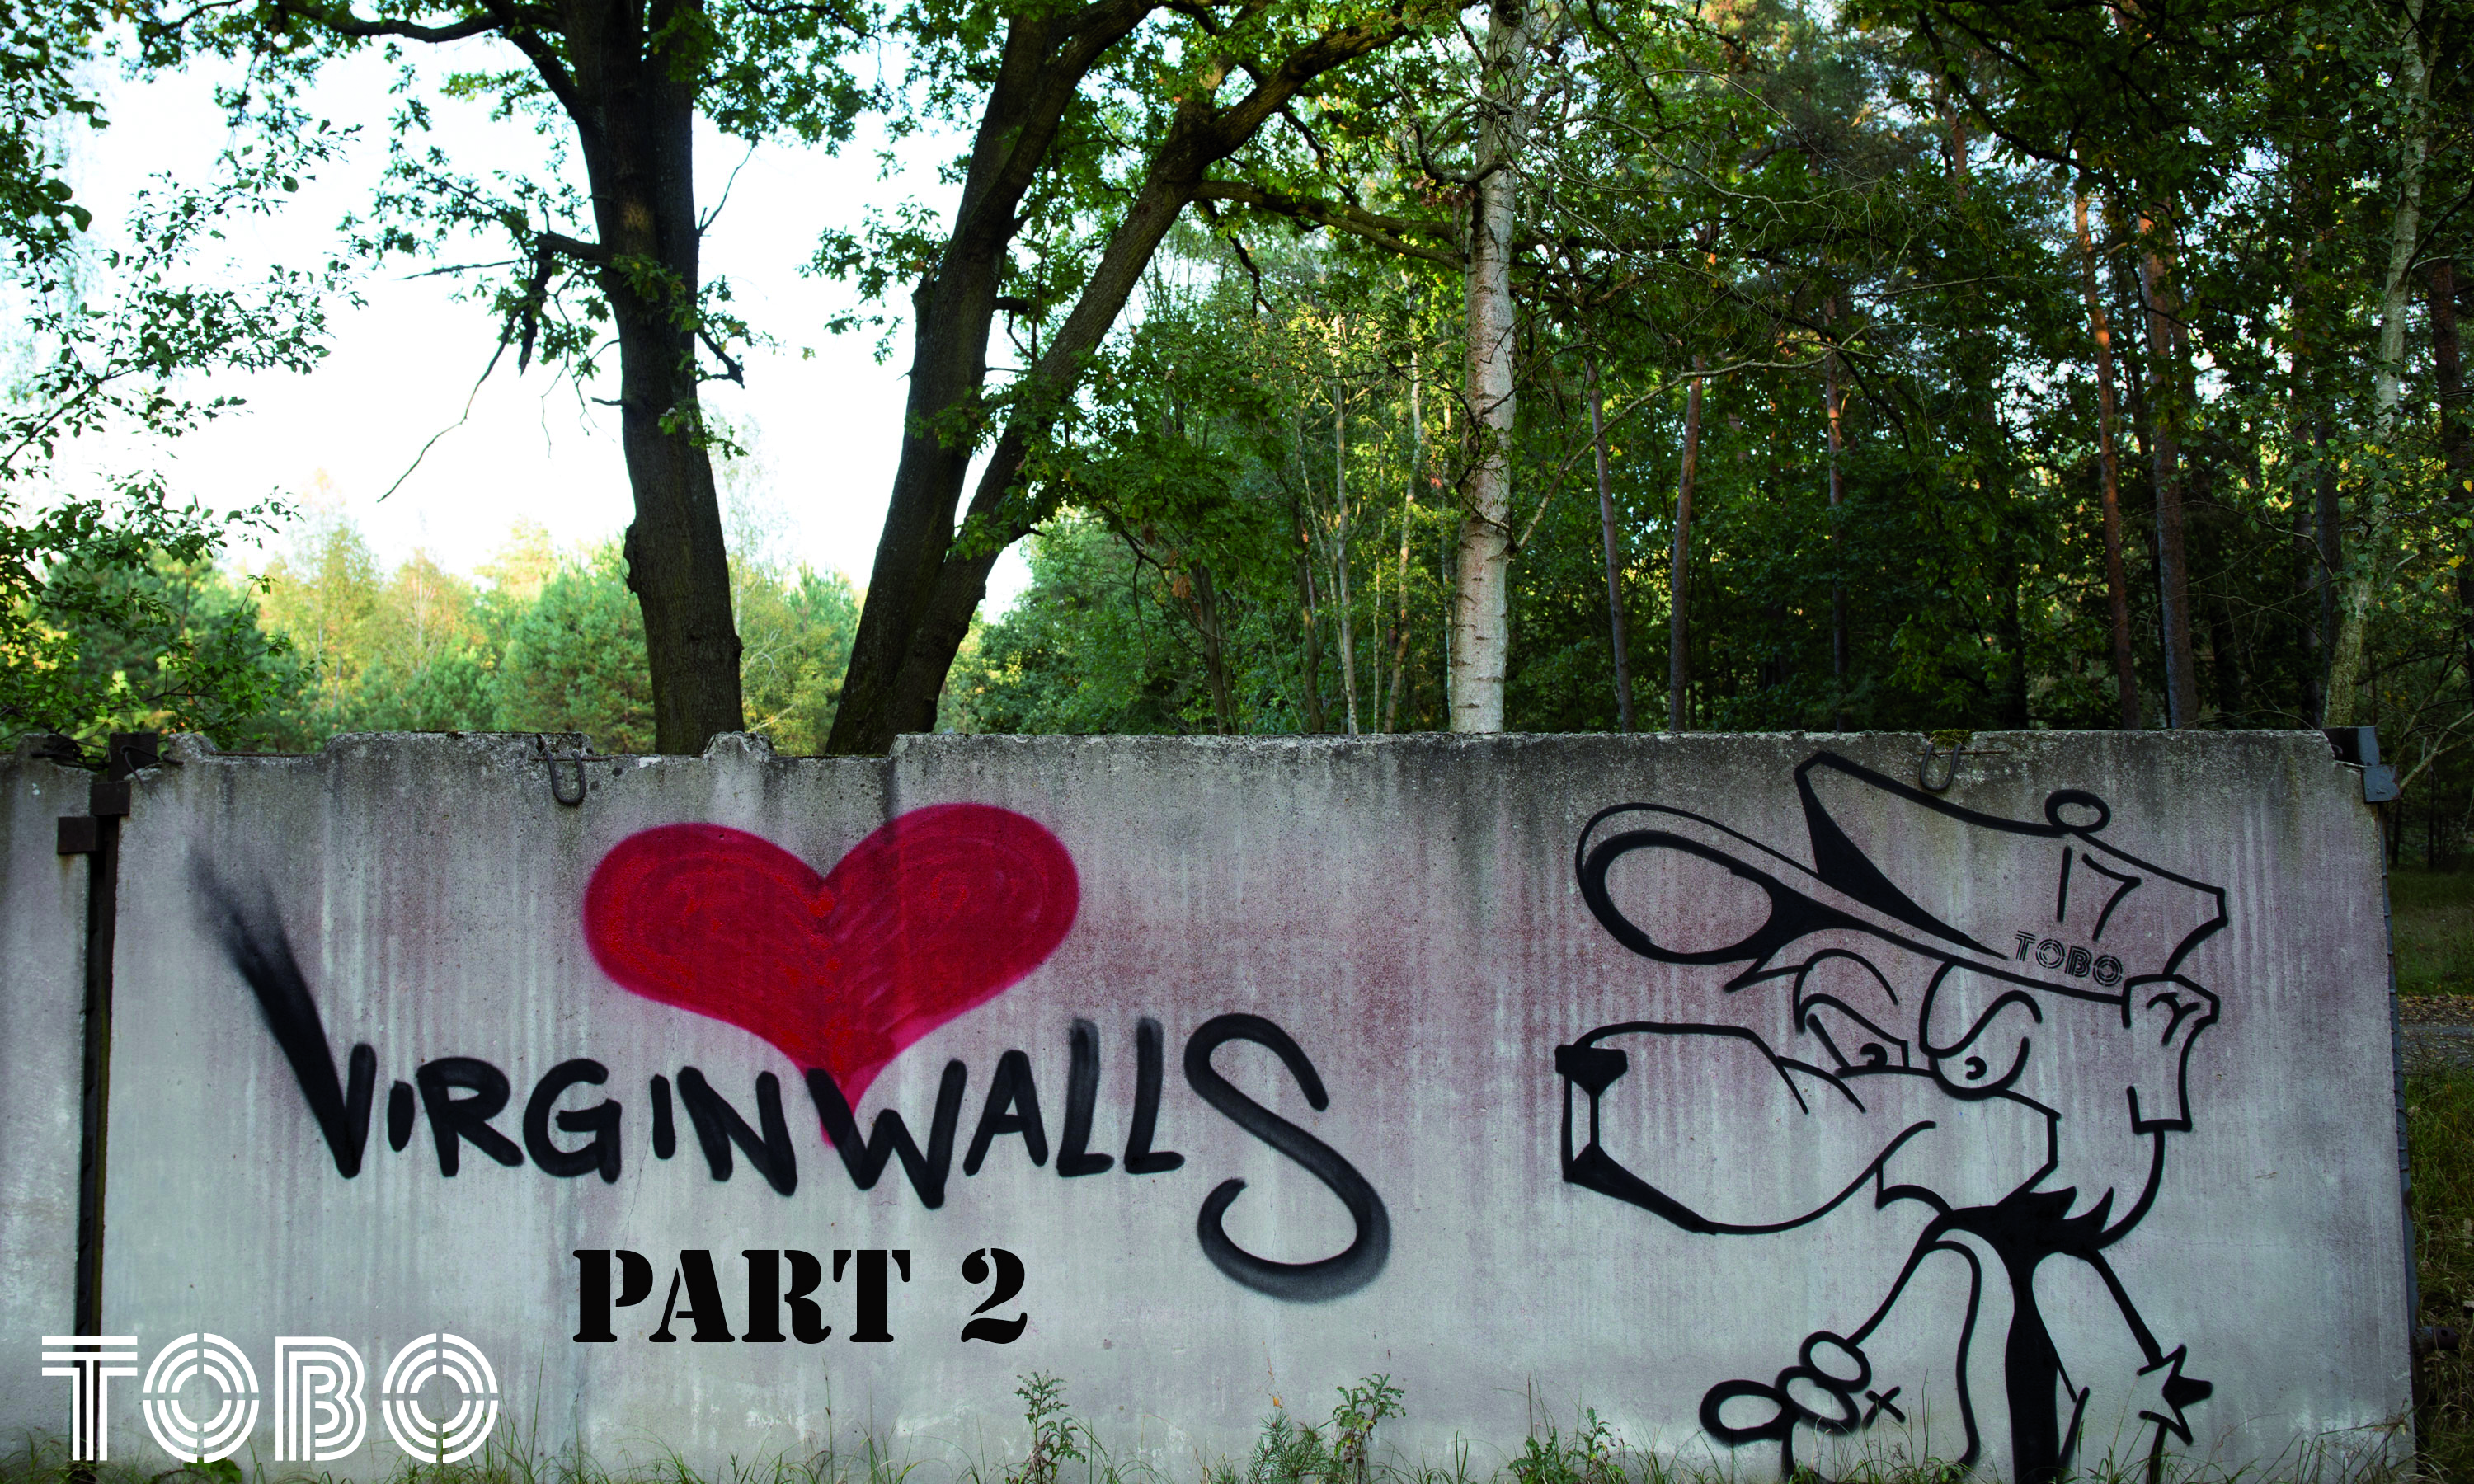 Tobo Erik Rotheim Graffiti Streetart urban art abandoned places lost verlassene orte Wald forest nature first lines funny happy revolution buy art from living artists the dead ones don'T need your money